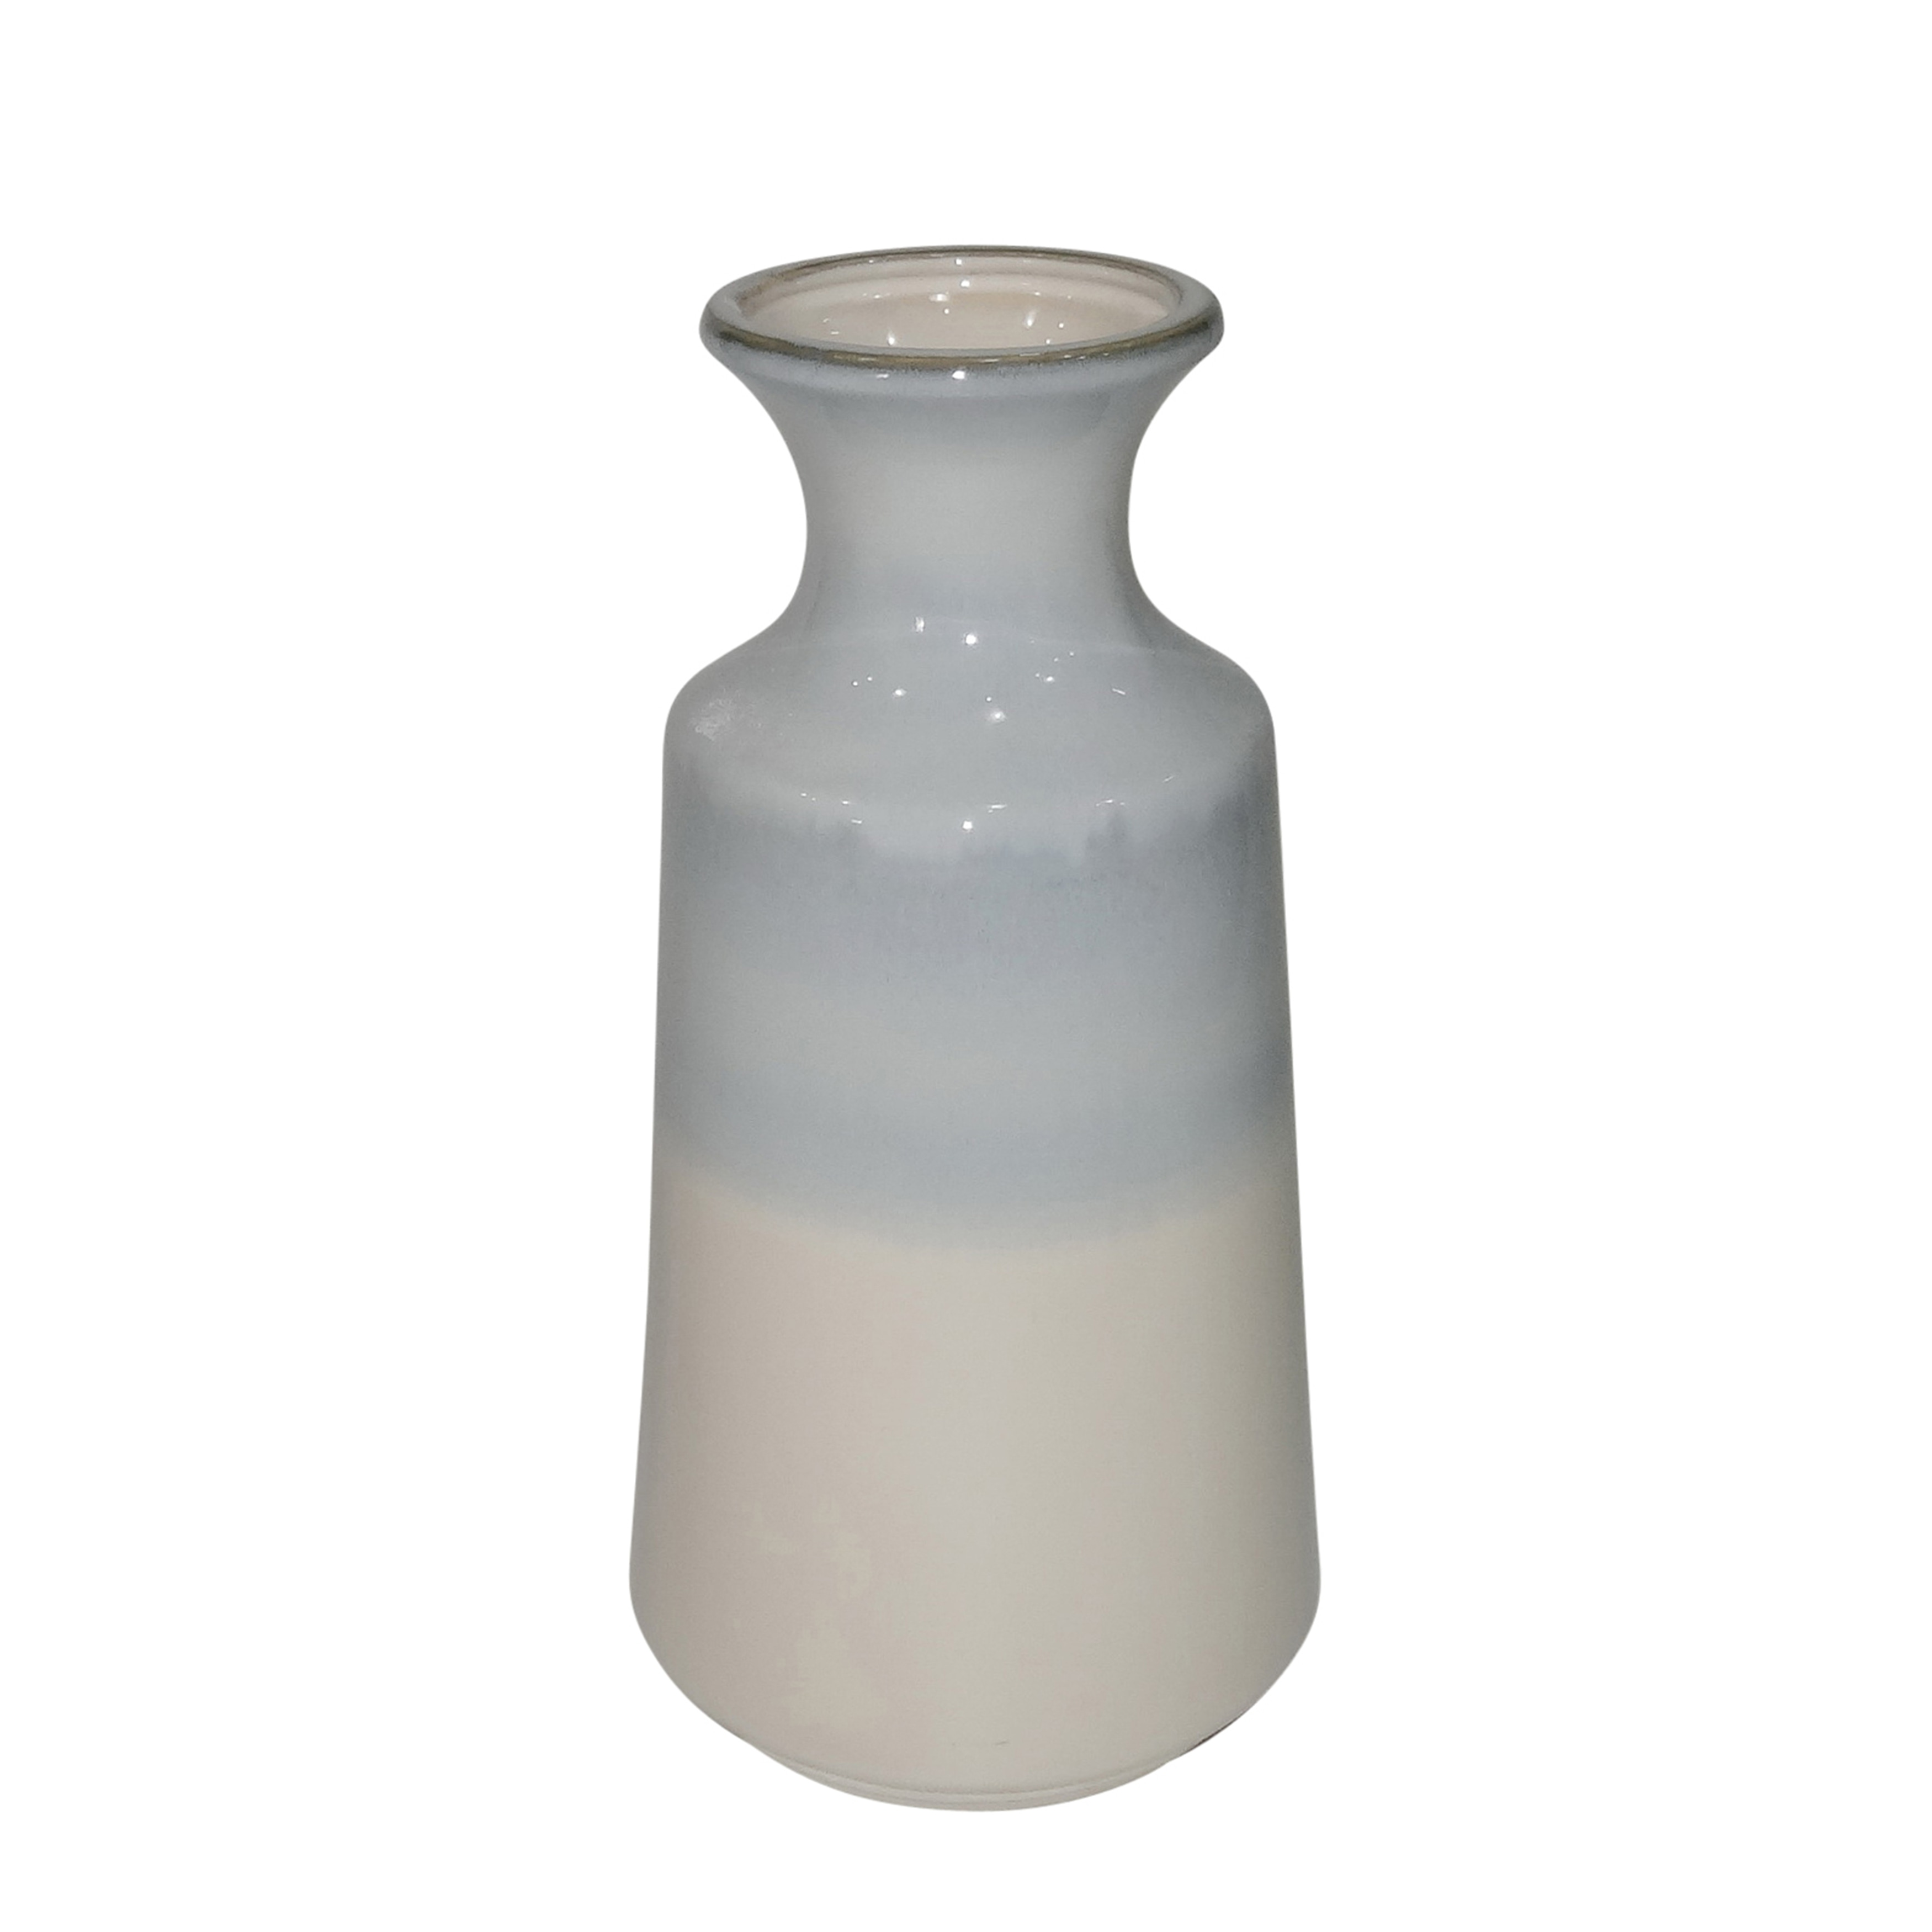 Dual Tone Ceramic Vase with Flared Neck, Blue and White